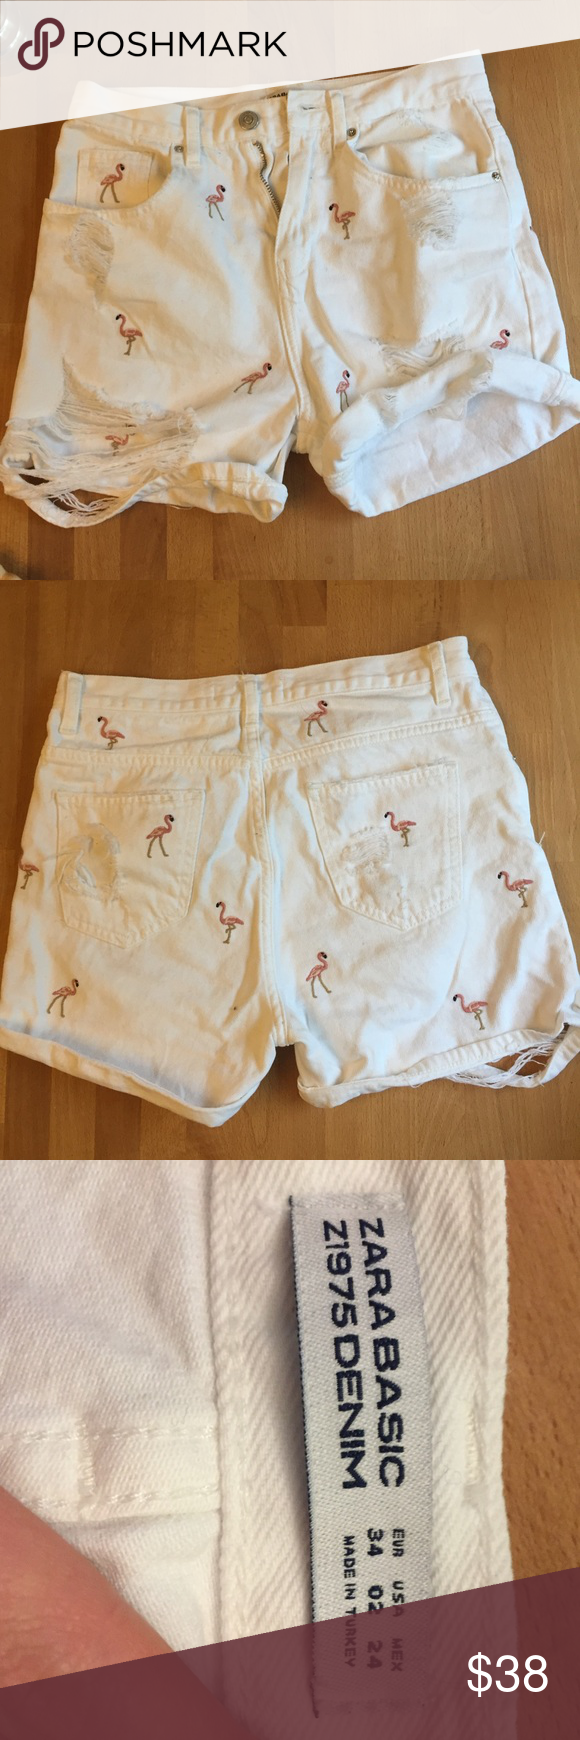 f2513d2e High rise Zara flamingo embroidered shorts Worn one time, tags removed.  Adorable white demon shorts, flamingos embroidered all over!